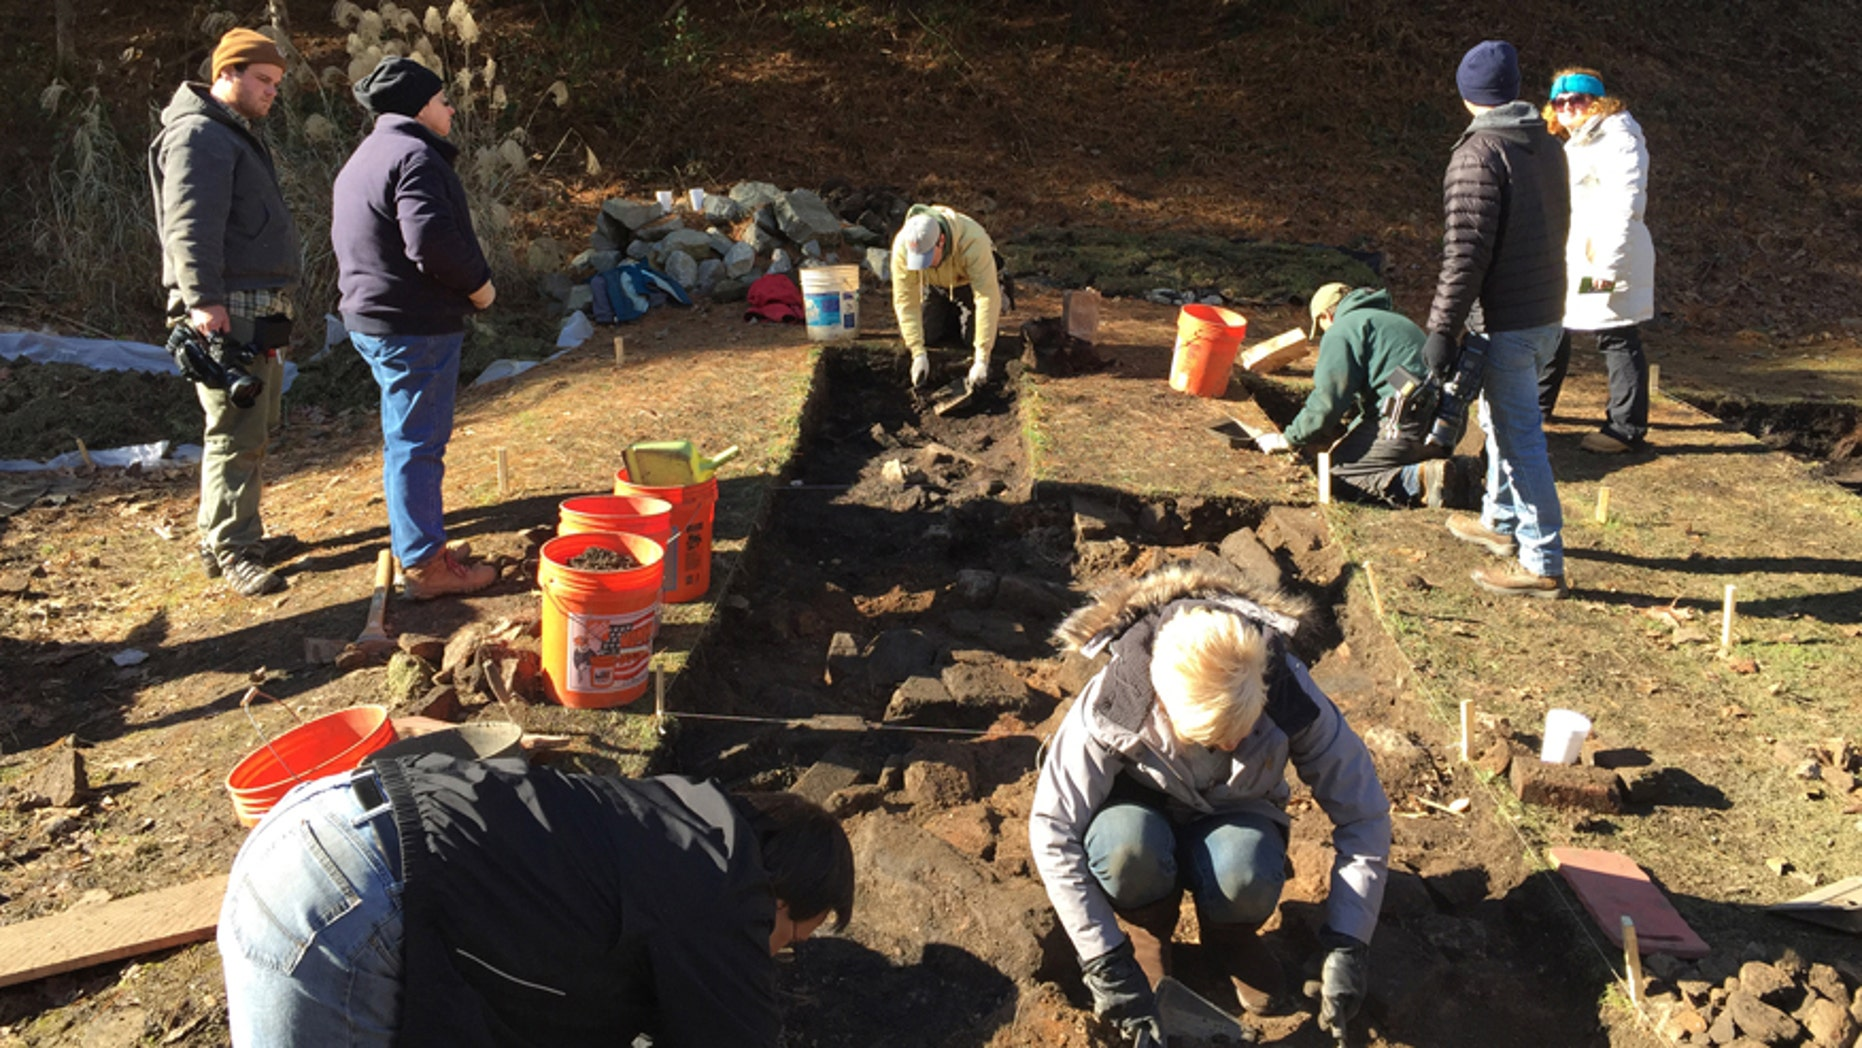 This Nov. 19, 2014 photo made available by Bill Richardson, shows the descendants of the Hatfield and McCoy families clearing the homesite of Randall McCoy in Pike County, KY.